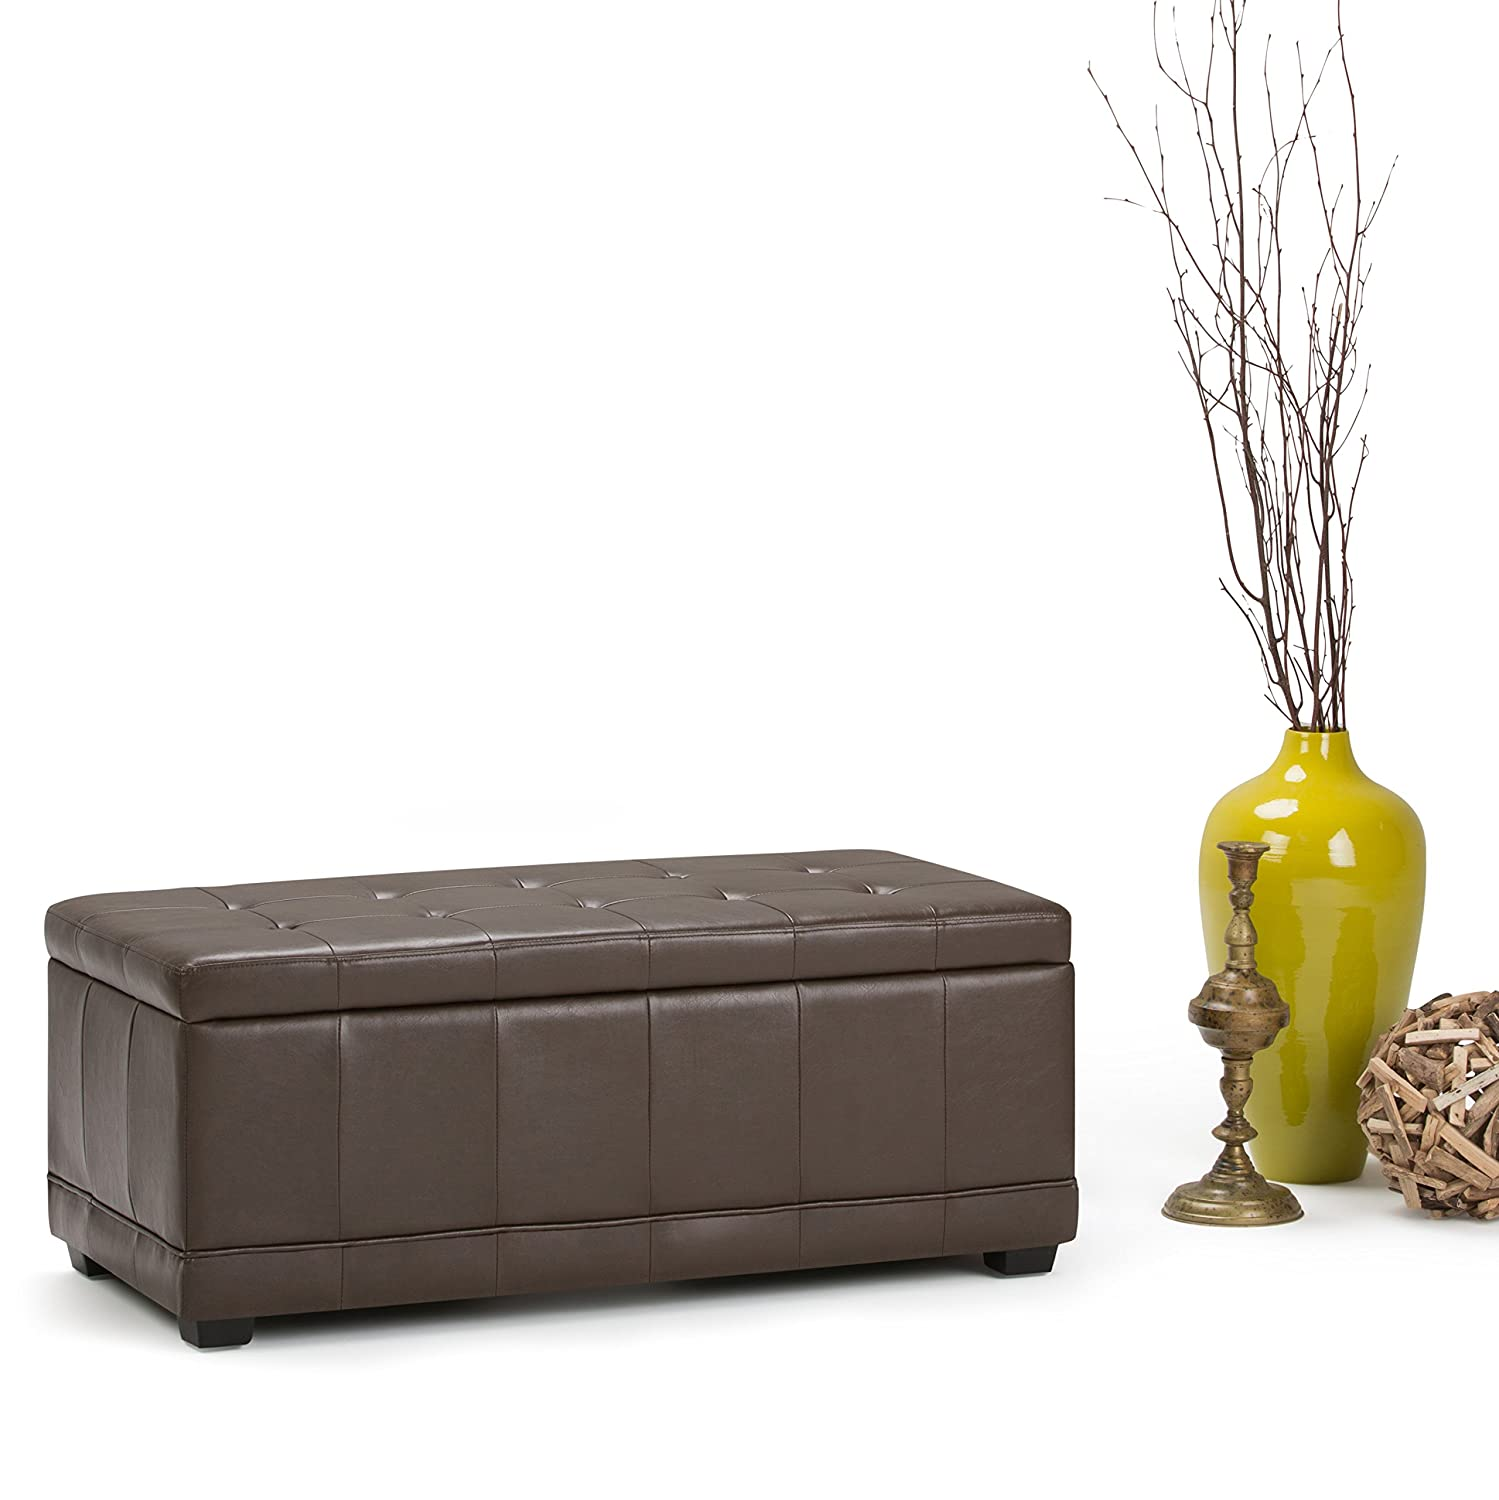 Simpli Home 3AXCOT-246-CBR Westchester 45 inch Wide Contemporary Storage Ottoman in Chocolate Brown Faux Leather